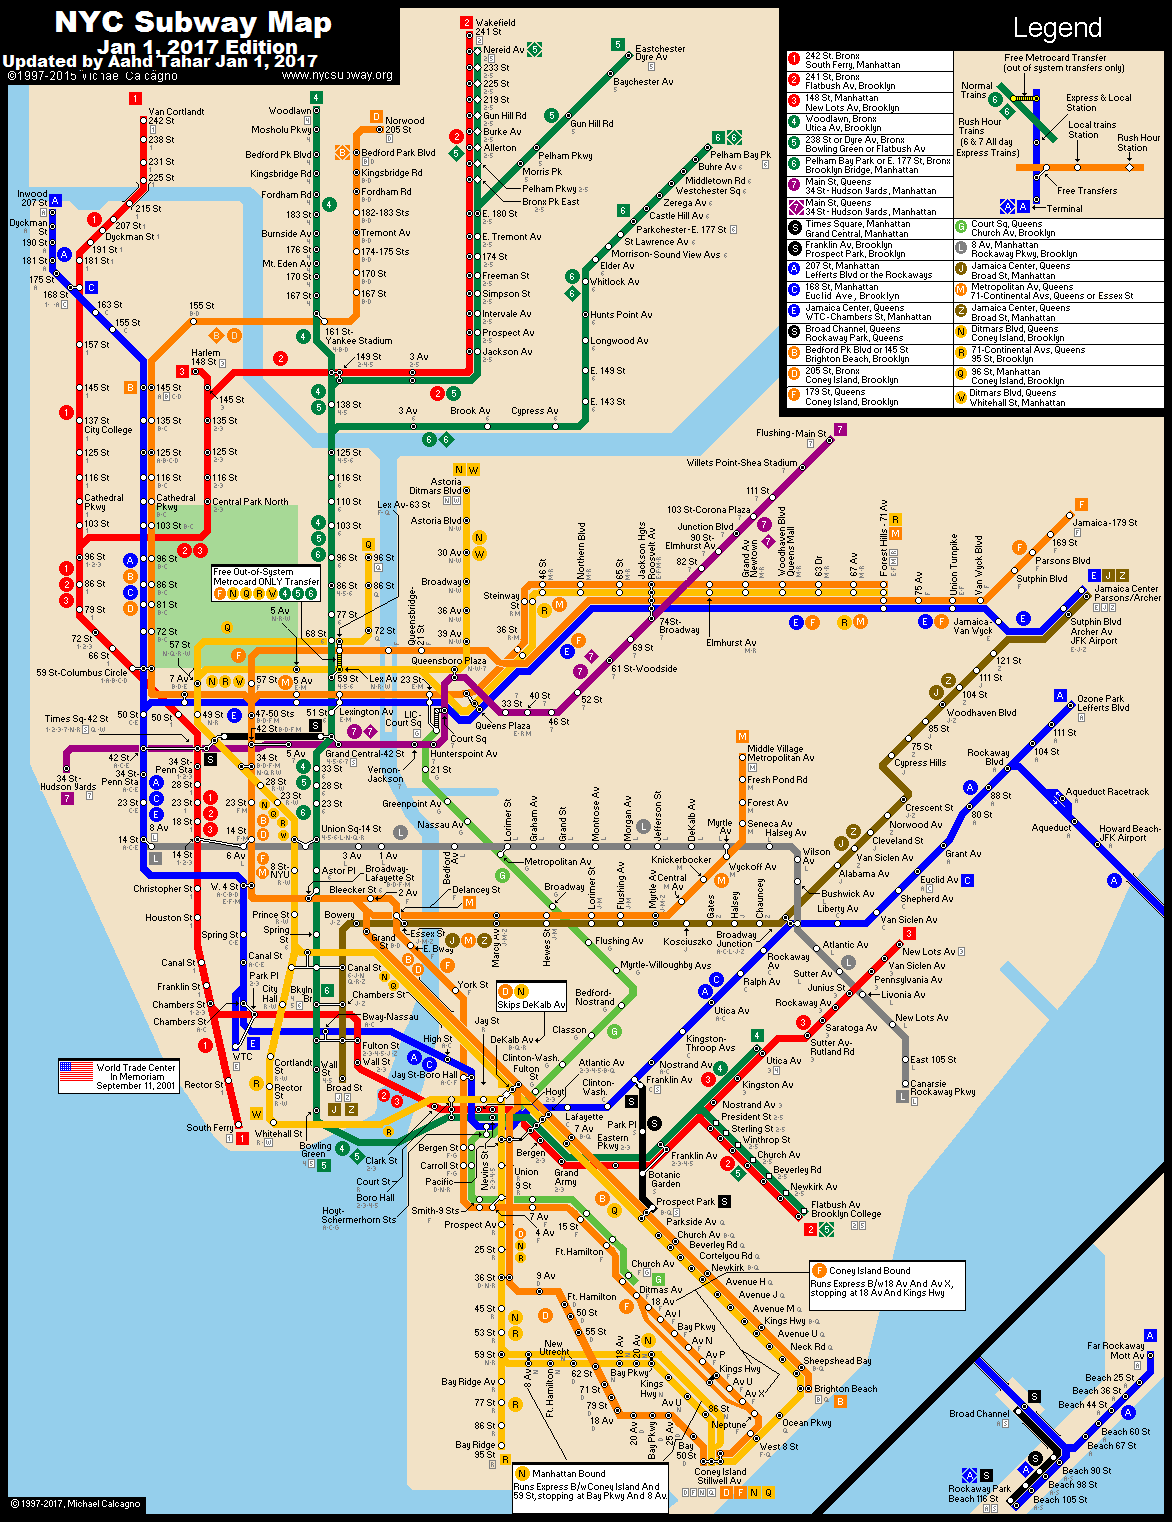 nycsubwayorg New York City Subway Route Map by Michael Calcagno – New York City Tourist Map PDF